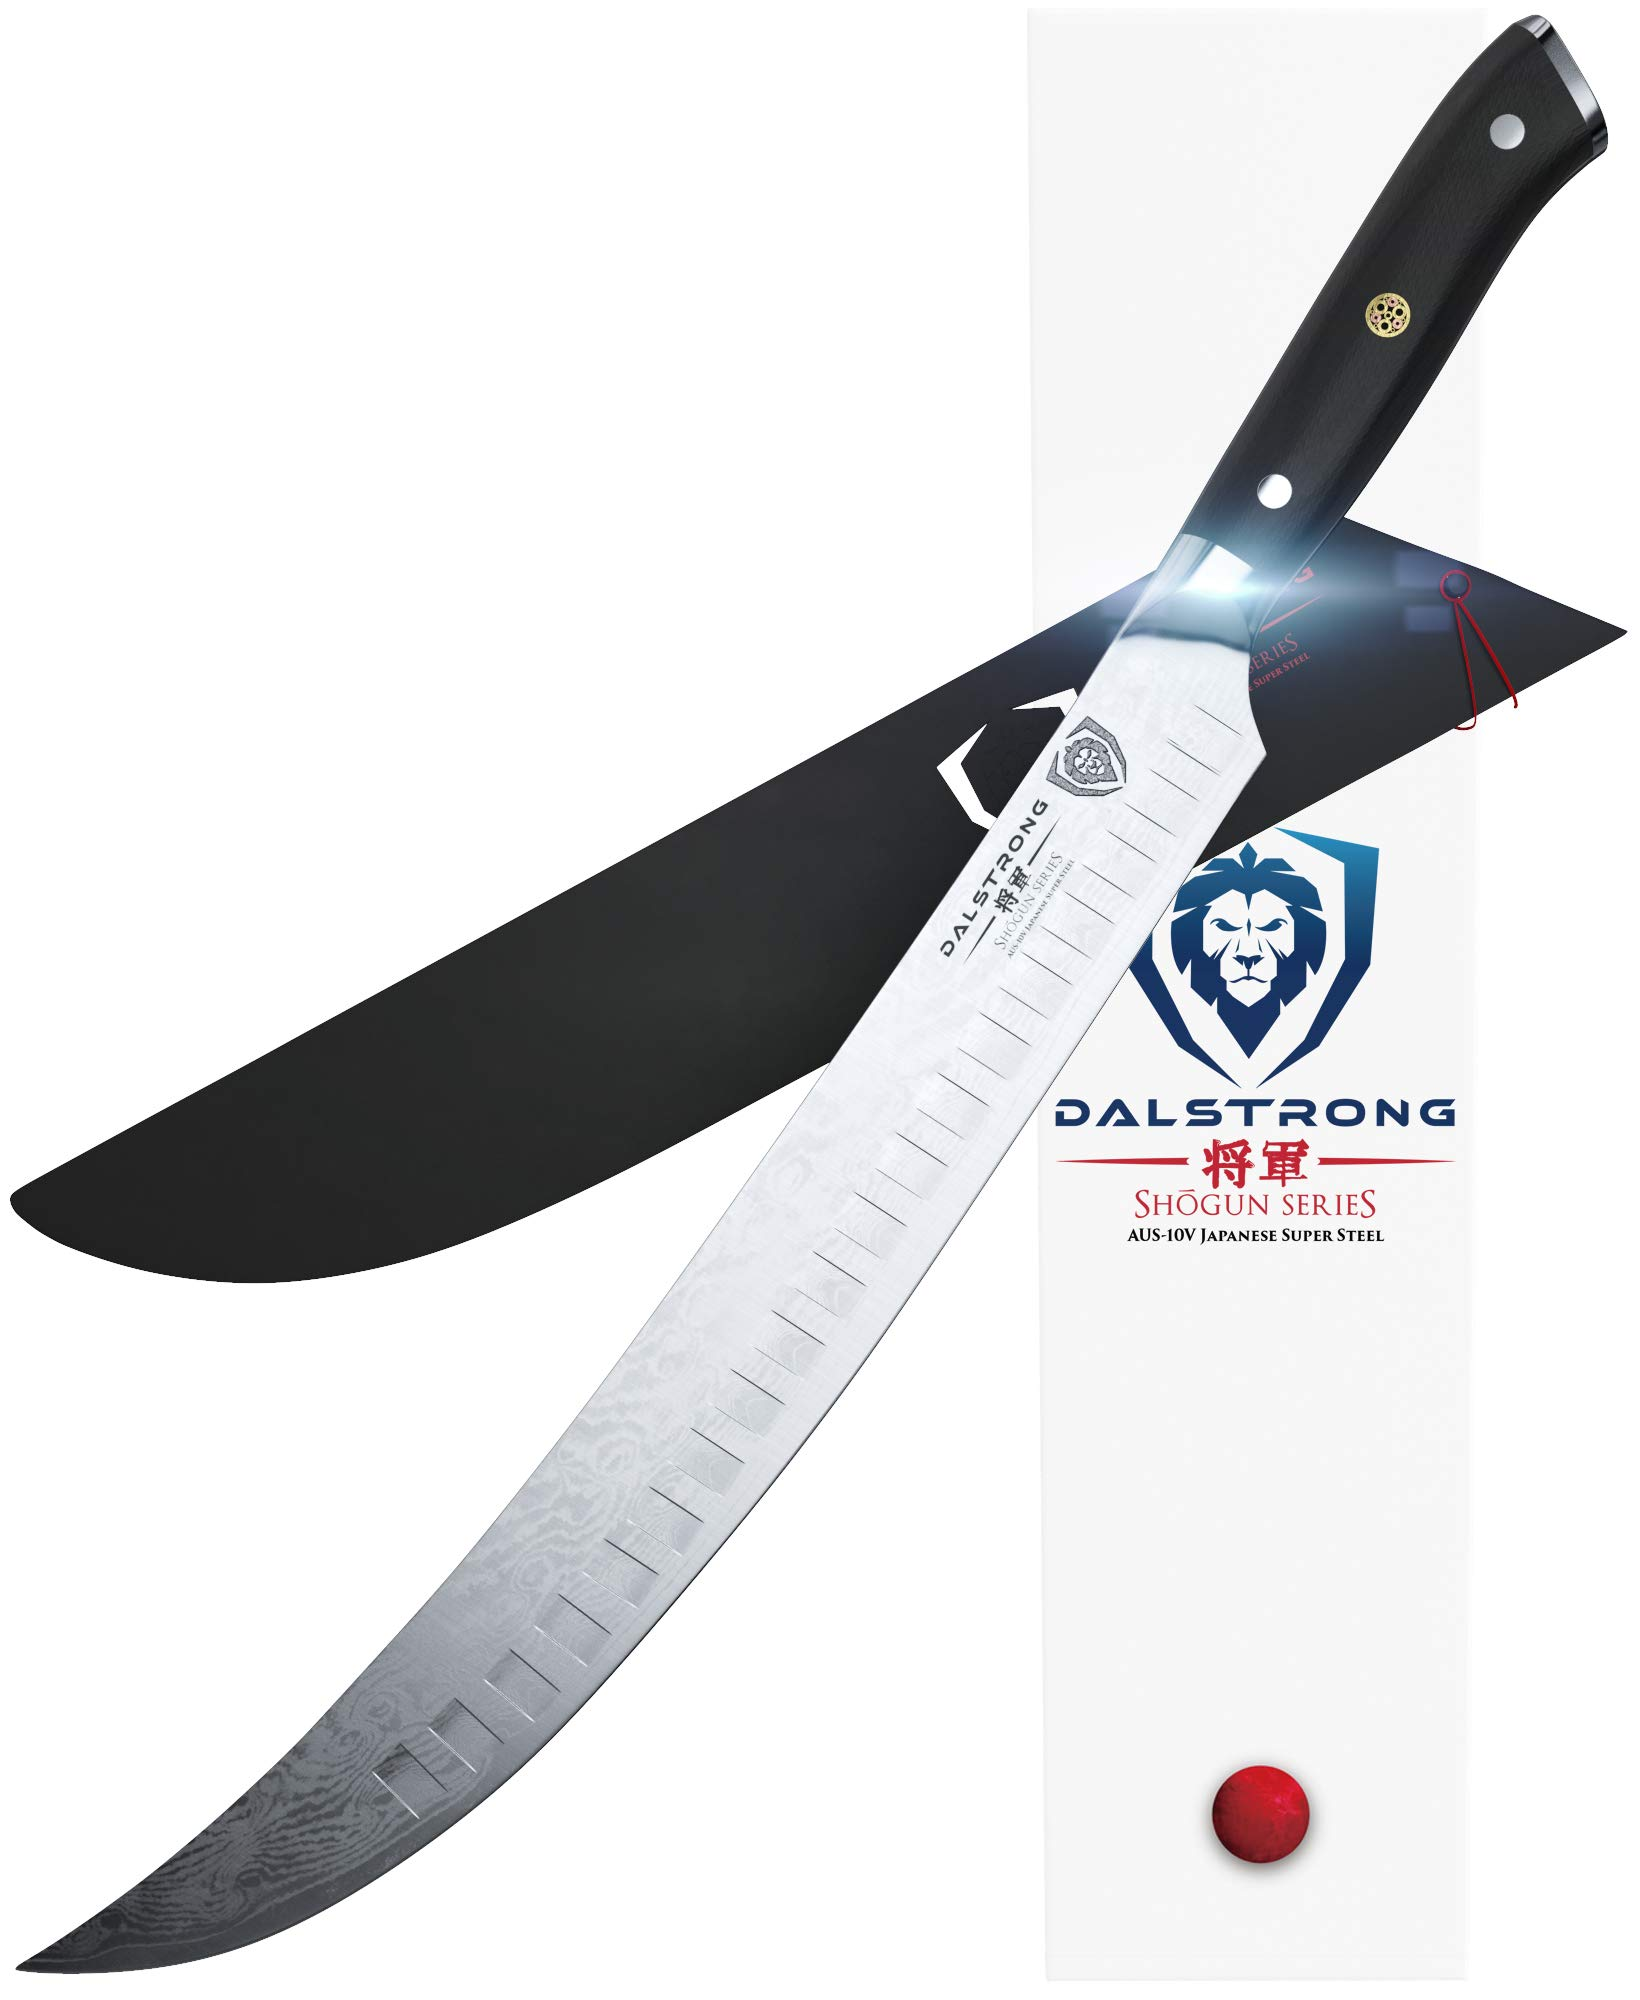 DALSTRONG Butcher's Breaking Cimitar Knife - Shogun Series - Japanese AUS-10V Super Steel - 12.5'' - w/Sheath by Dalstrong